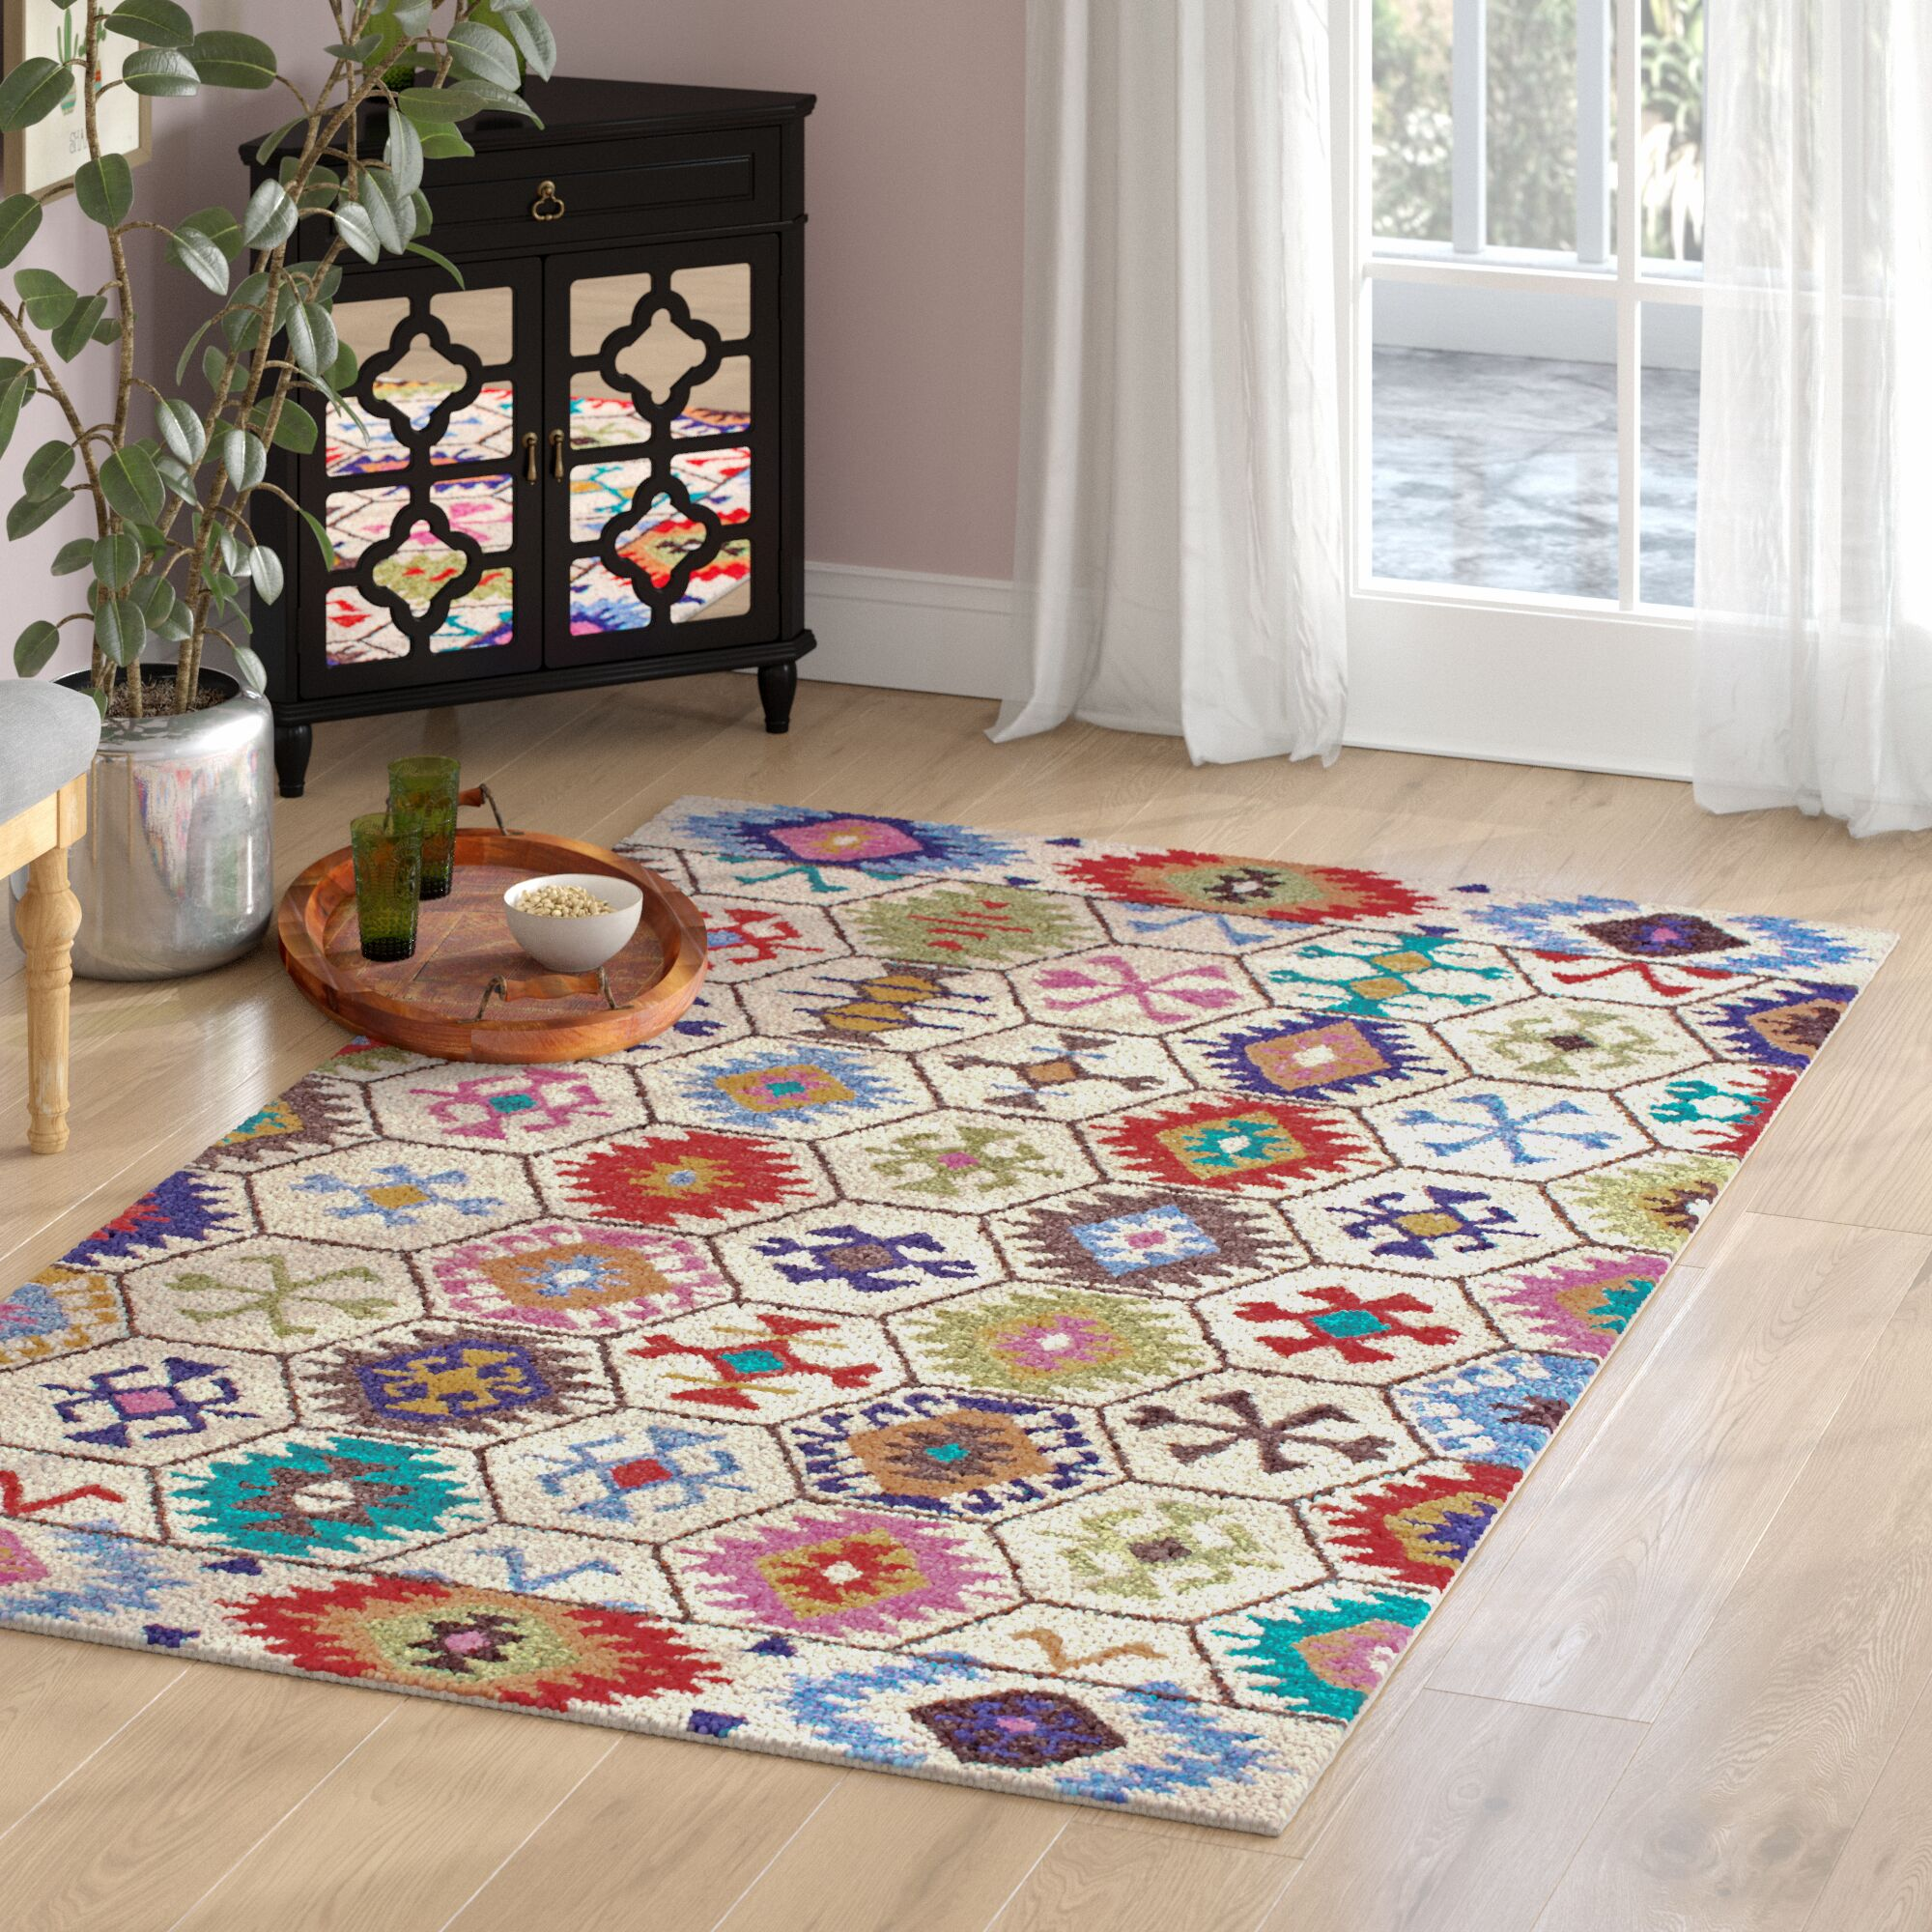 Toubqal Hand-Tufted Beige Area Rug Rug Size: Rectangle 6' x 9'